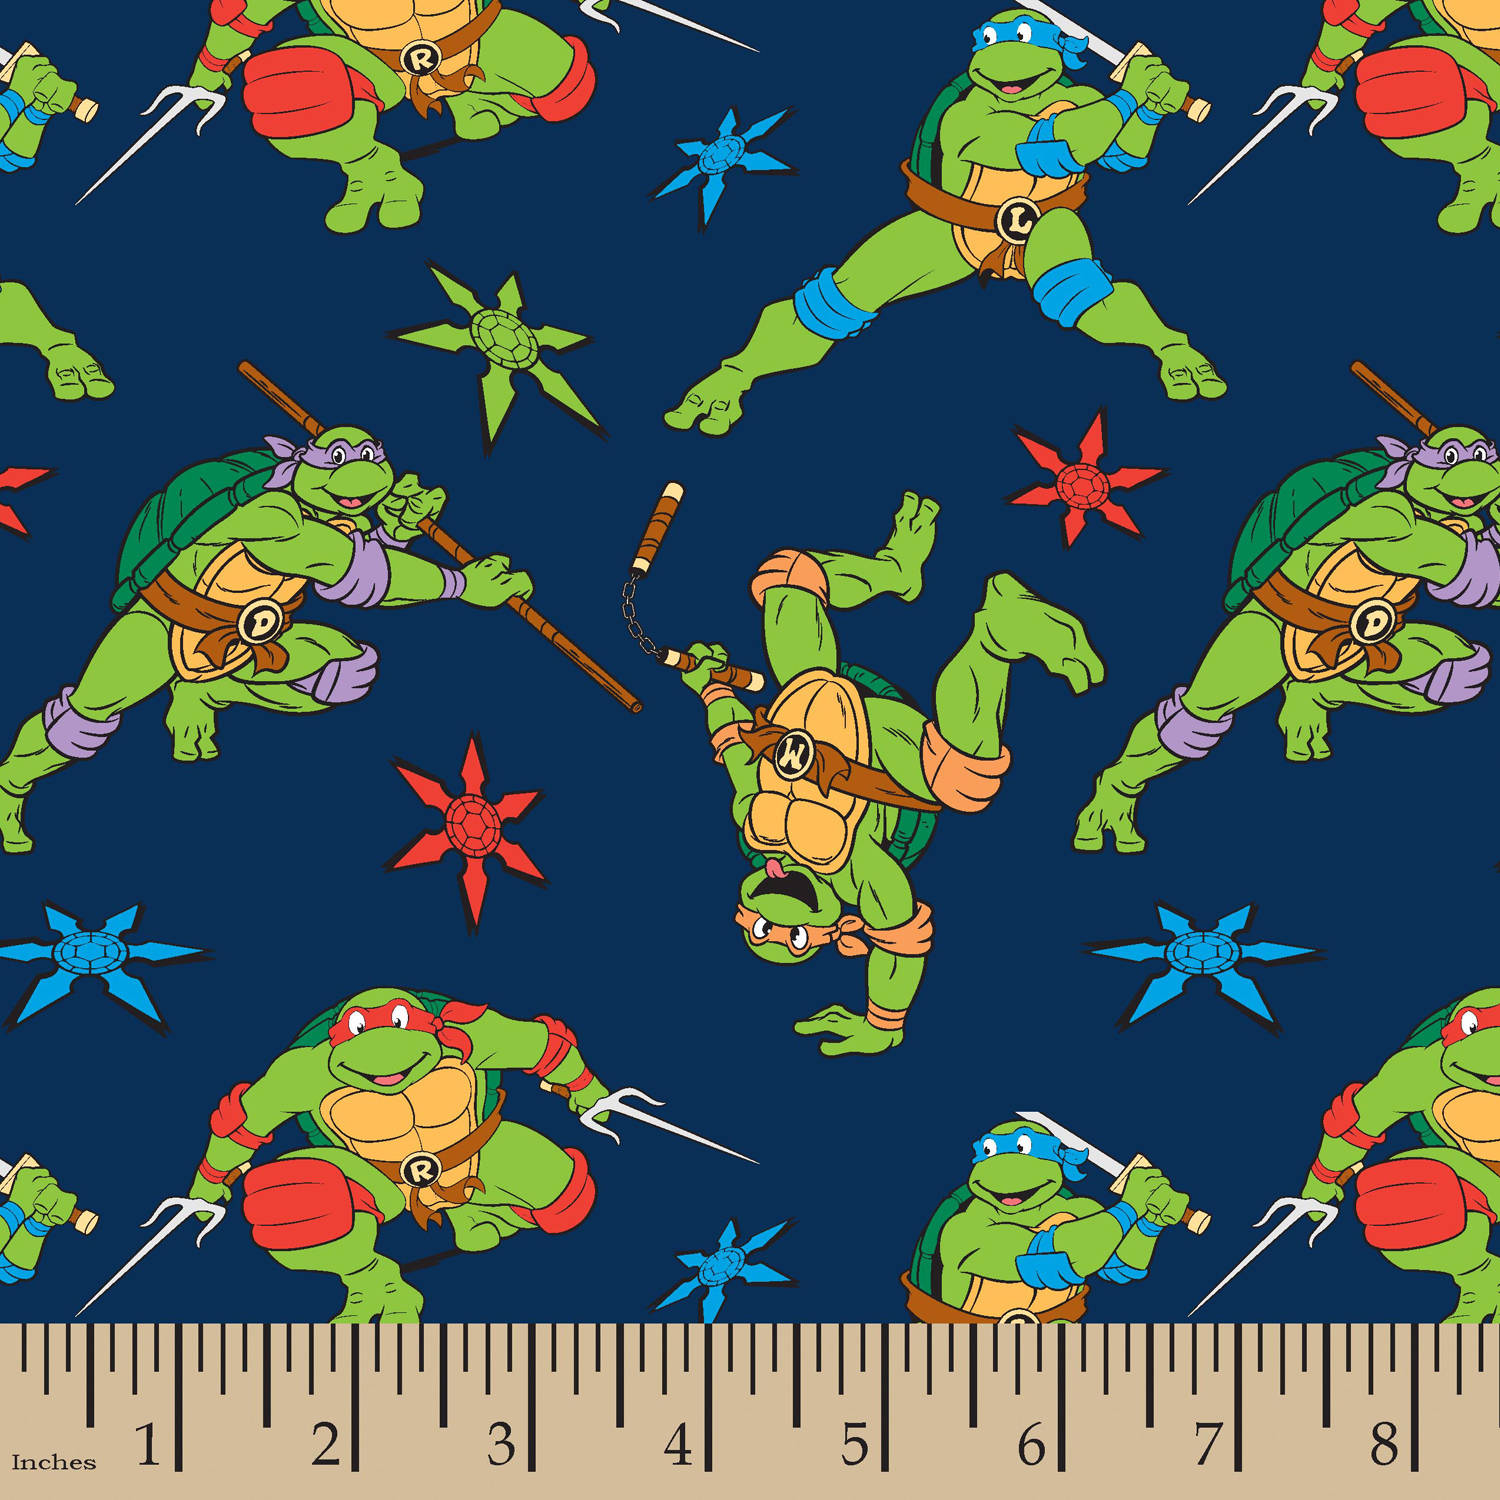 "TMNT Cawabunga Toss, Flannel, Navy, 42/43"" Width, Fabric by the Yard"